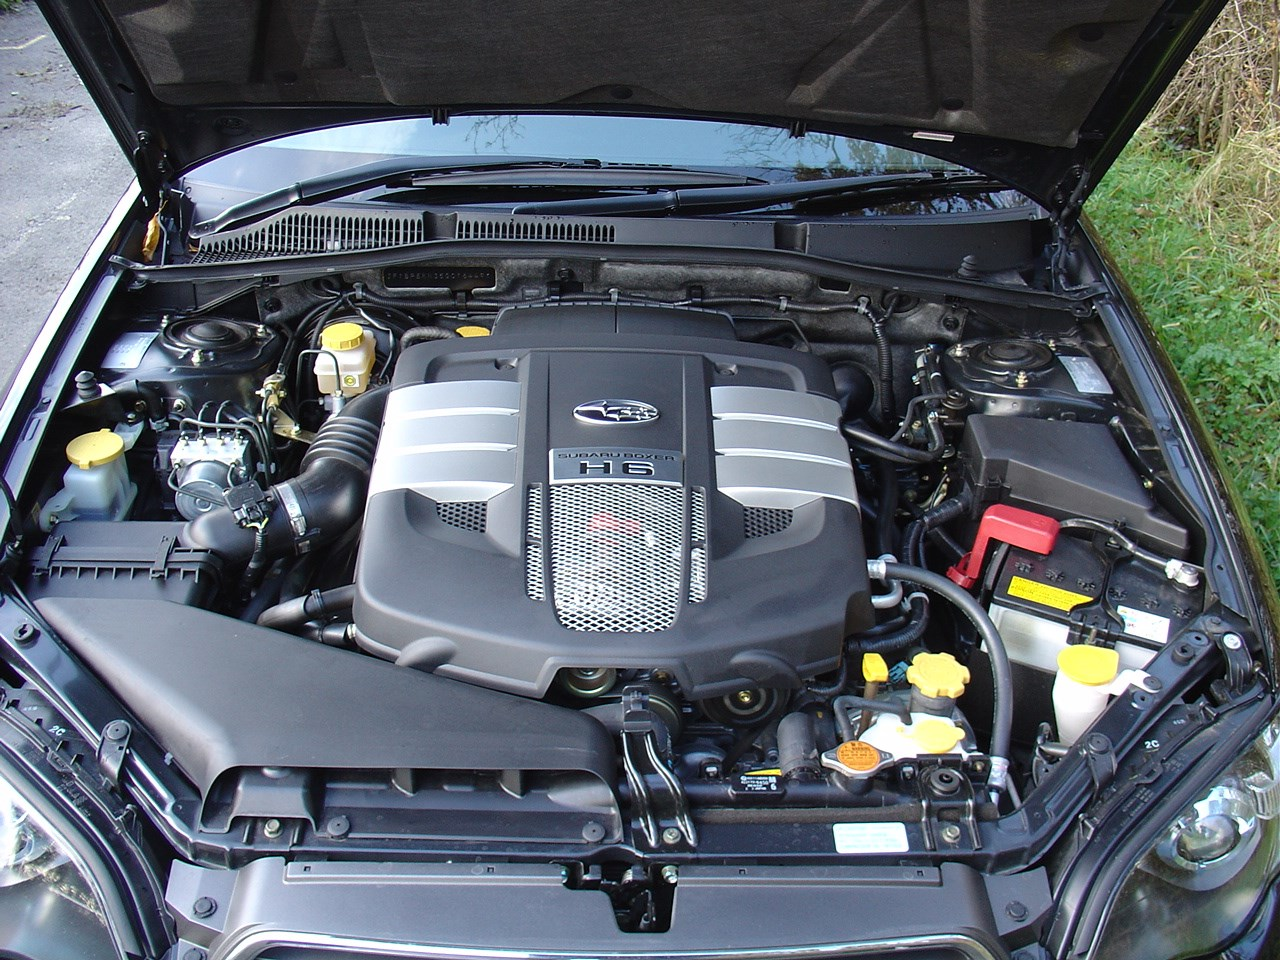 2001 Subaru Legacy Engine Bay 2009 Compartment Diagram Sports Tourer Running Costs Parkers 1280x960